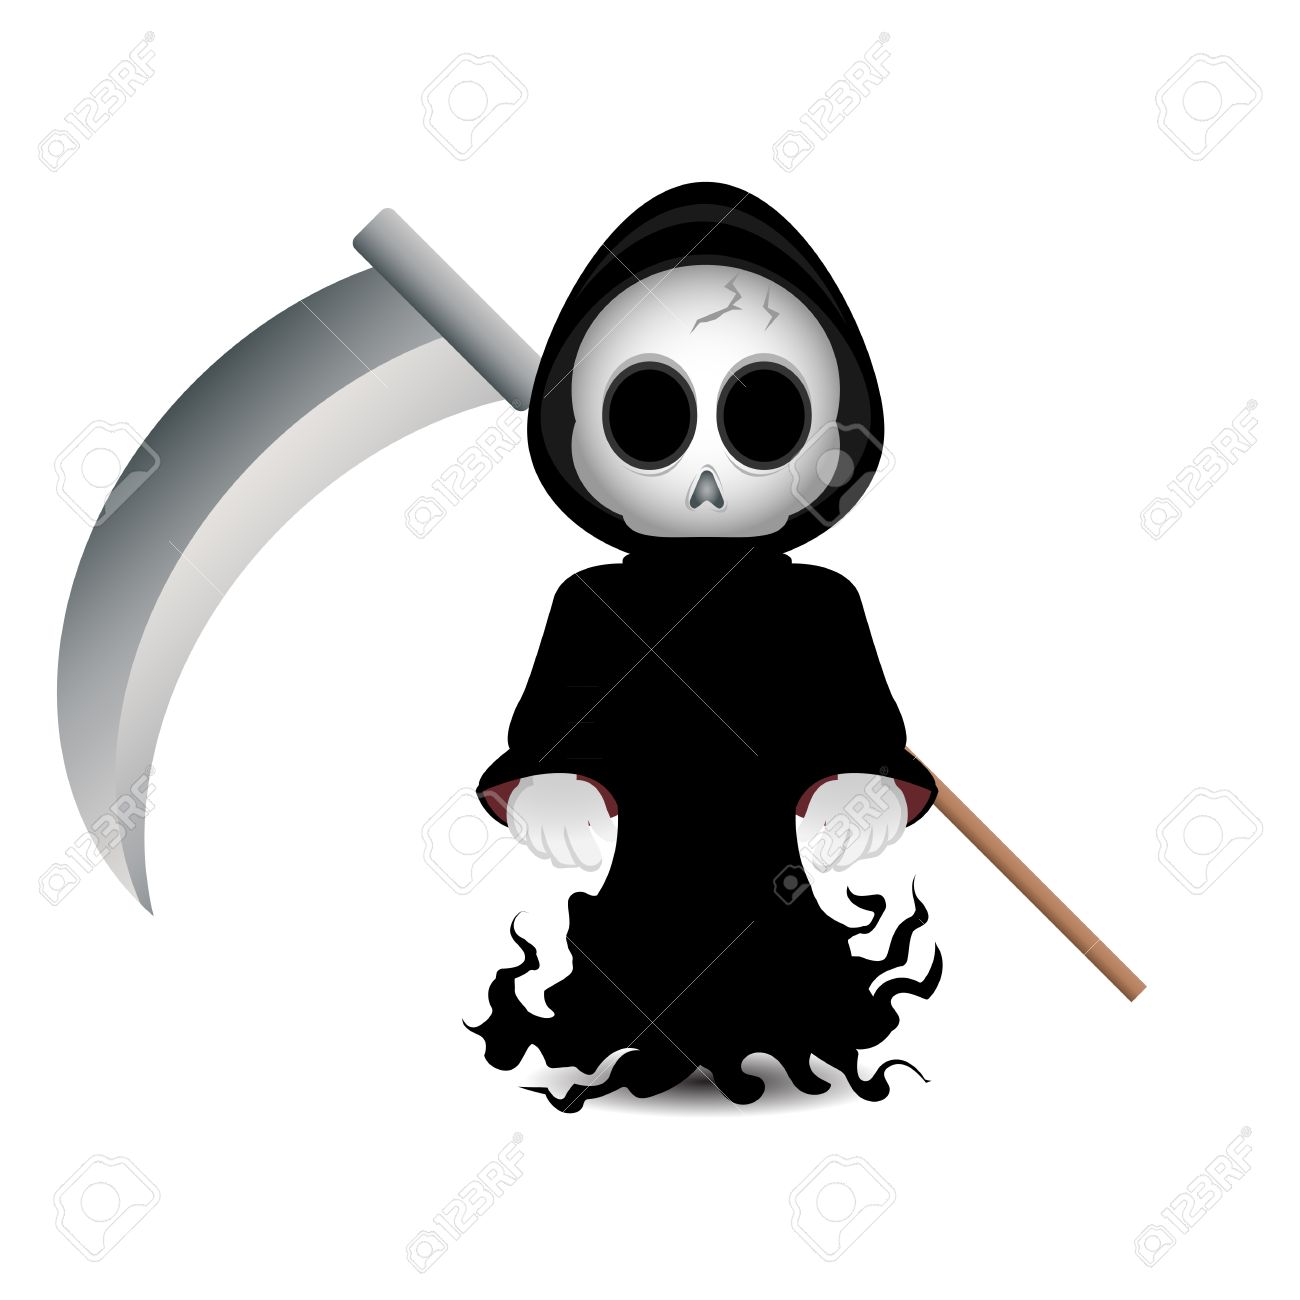 hight resolution of cute grim reaper clip art for halloween stock photo 15606958